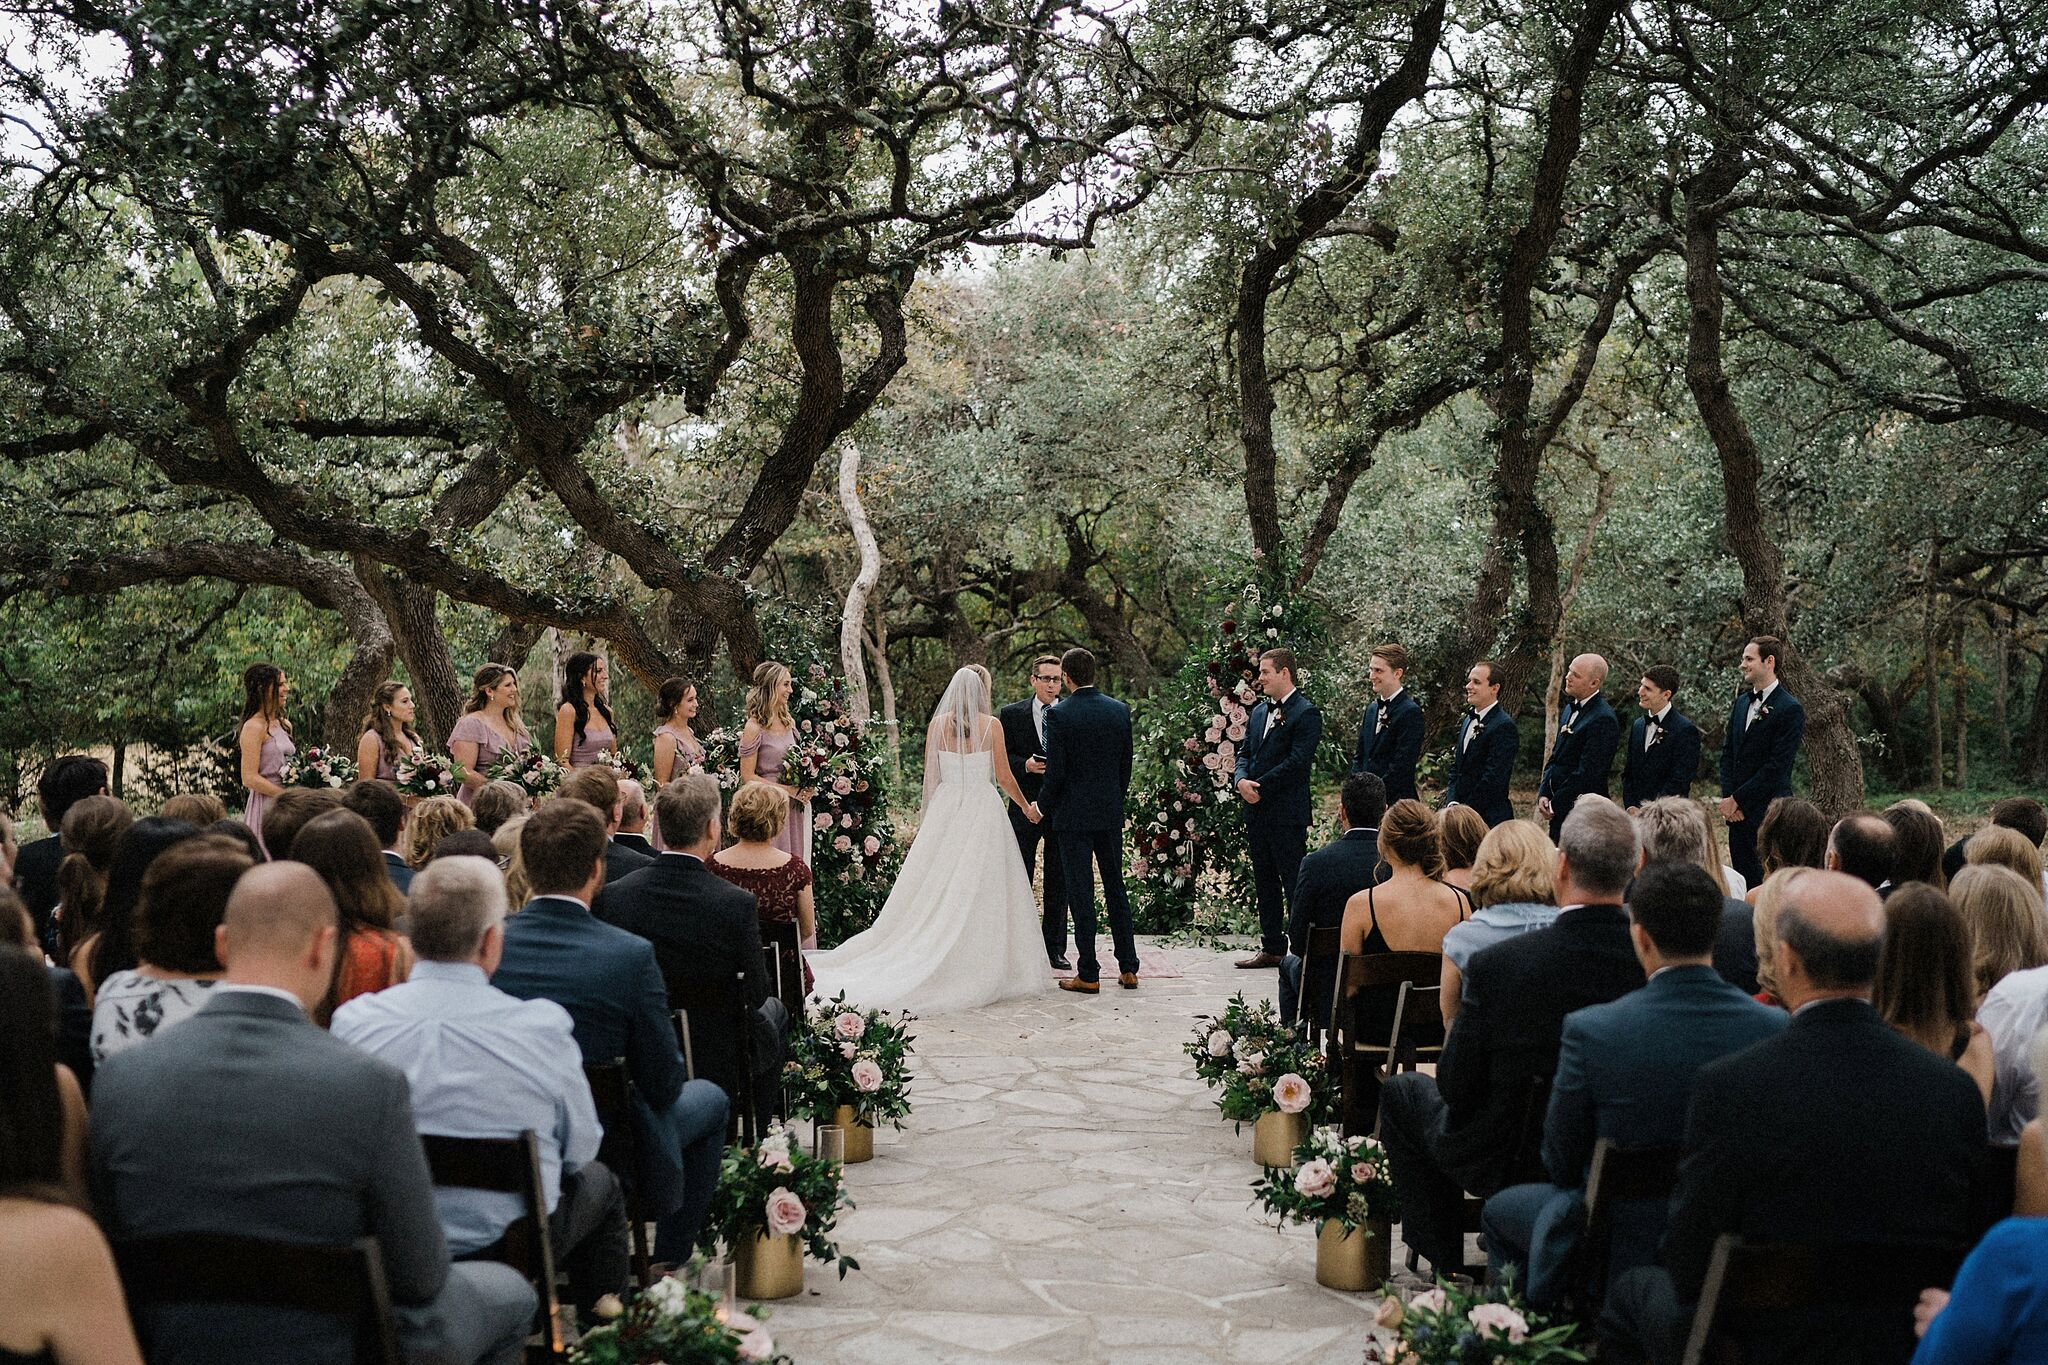 Photography: grant daniels photography | Planner: heavenly day events | Florist: sweet water stems